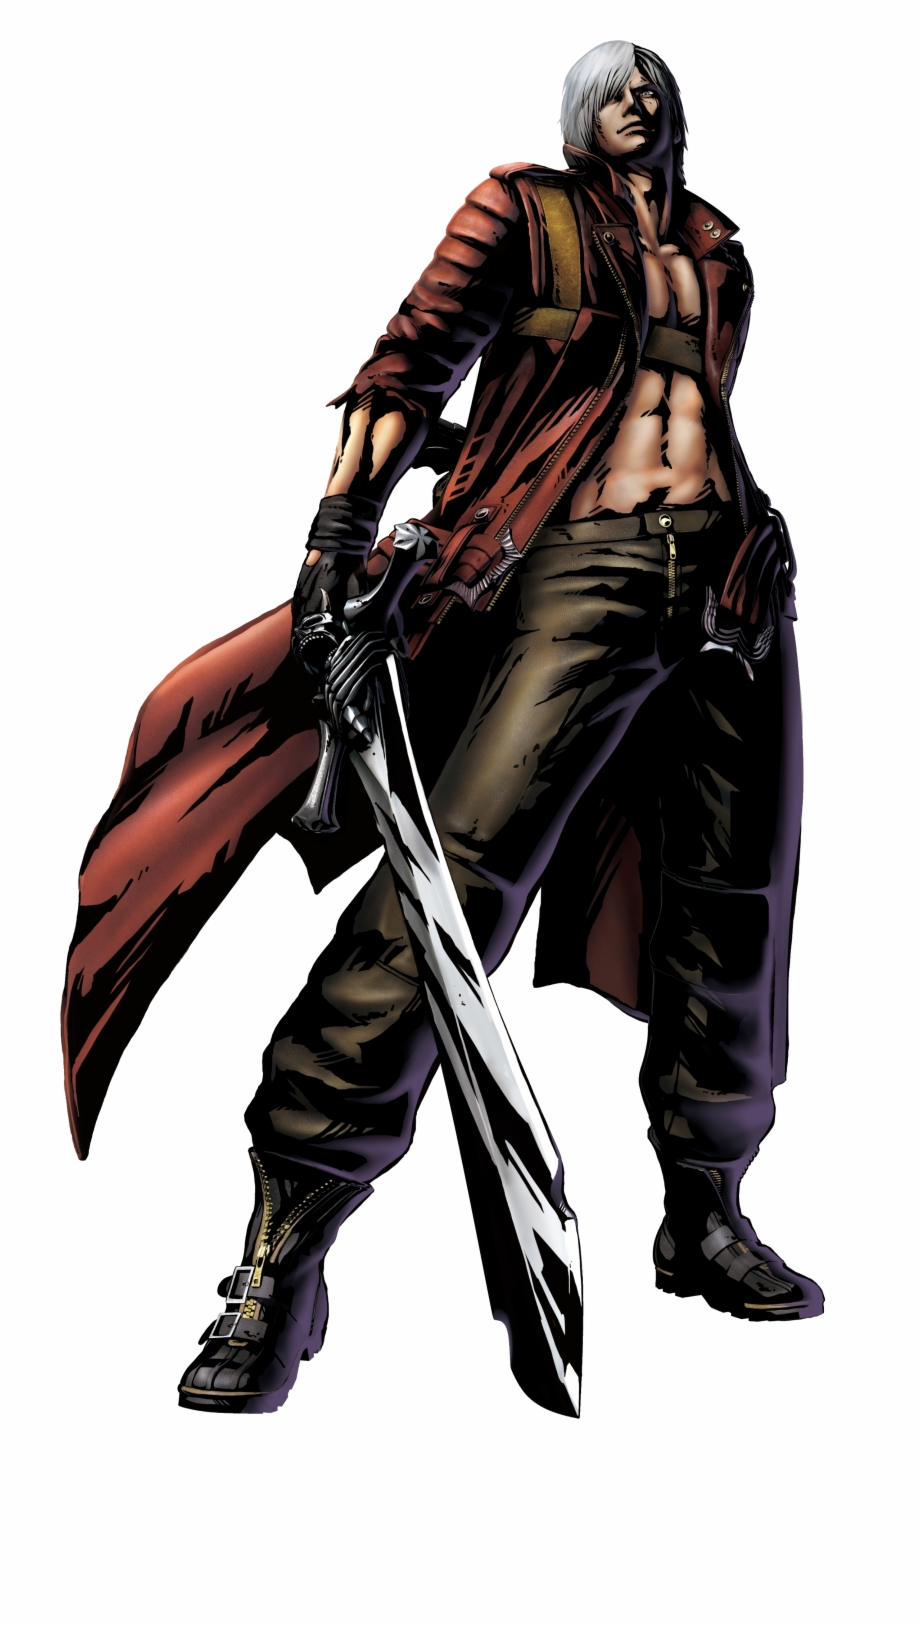 Dante From Devil May Cry 3 Free PNG Images & Clipart Download.